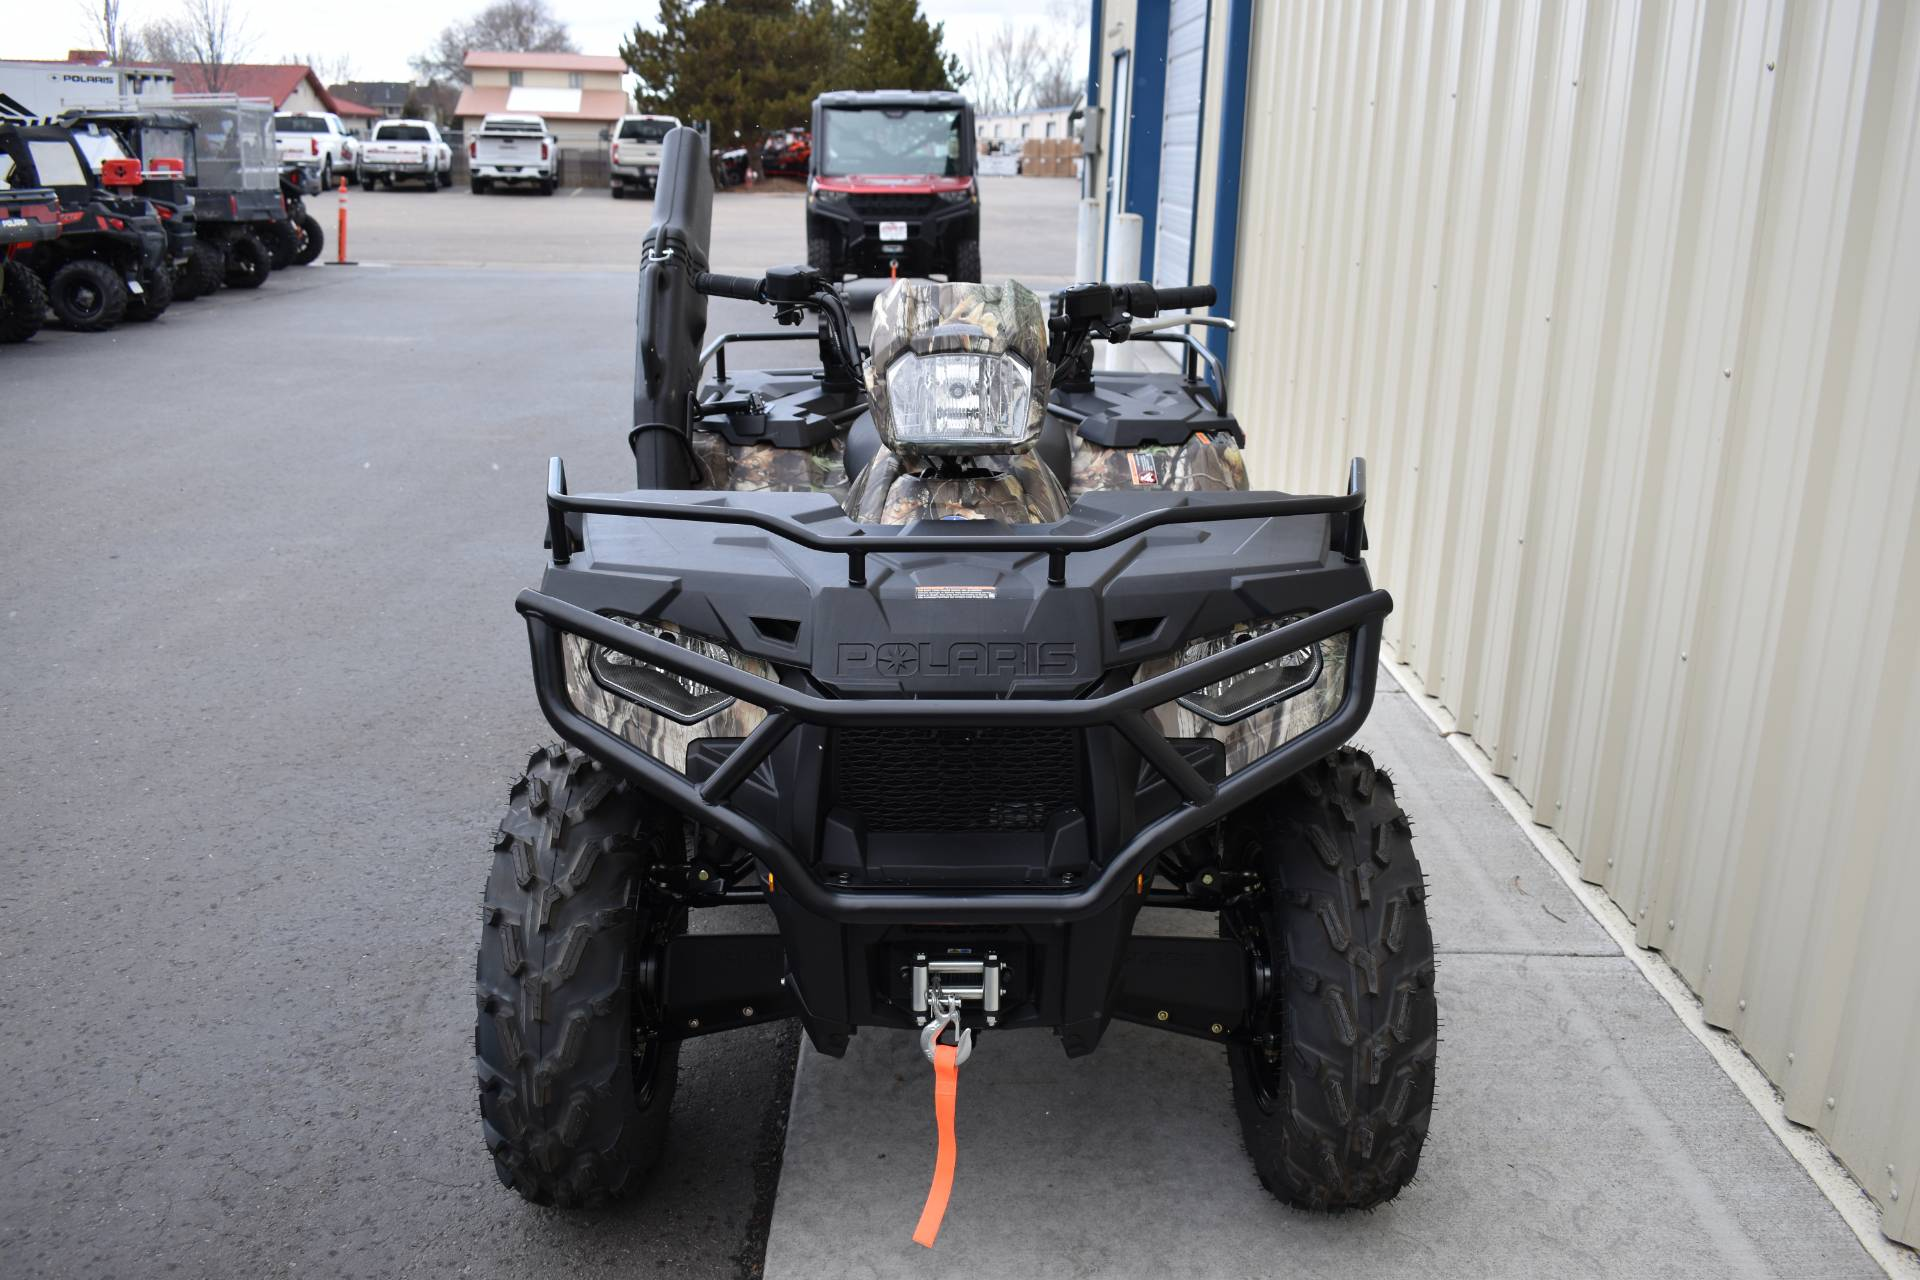 2020 Polaris Sportsman 570 Hunter Edition in Boise, Idaho - Photo 2